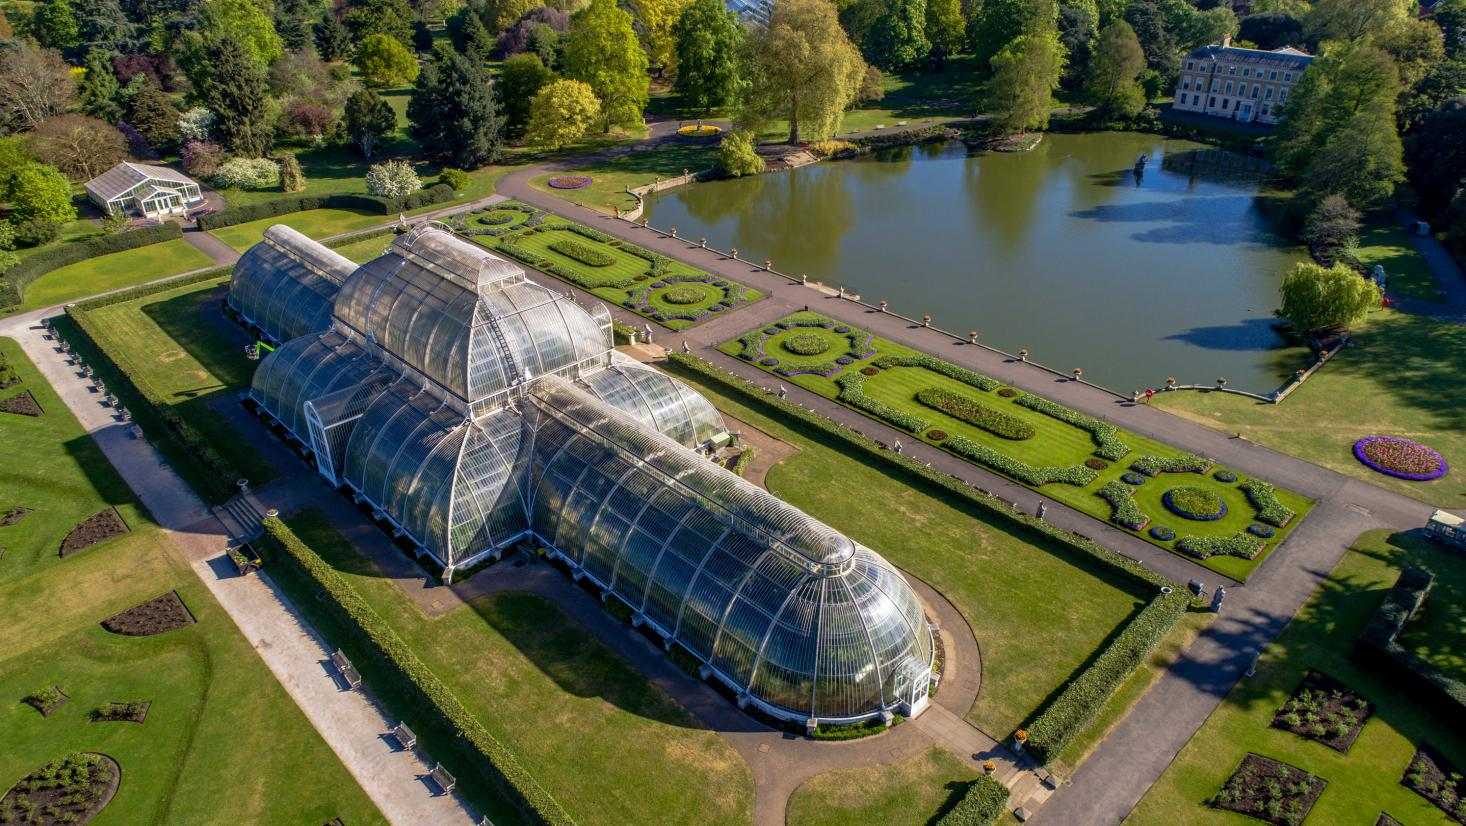 The Palm House  at Kew Royal Botanic Gardens in England, originally constructed in 1844 as a home for exotic plant varieties brought back from abroad. | Source:  itinari